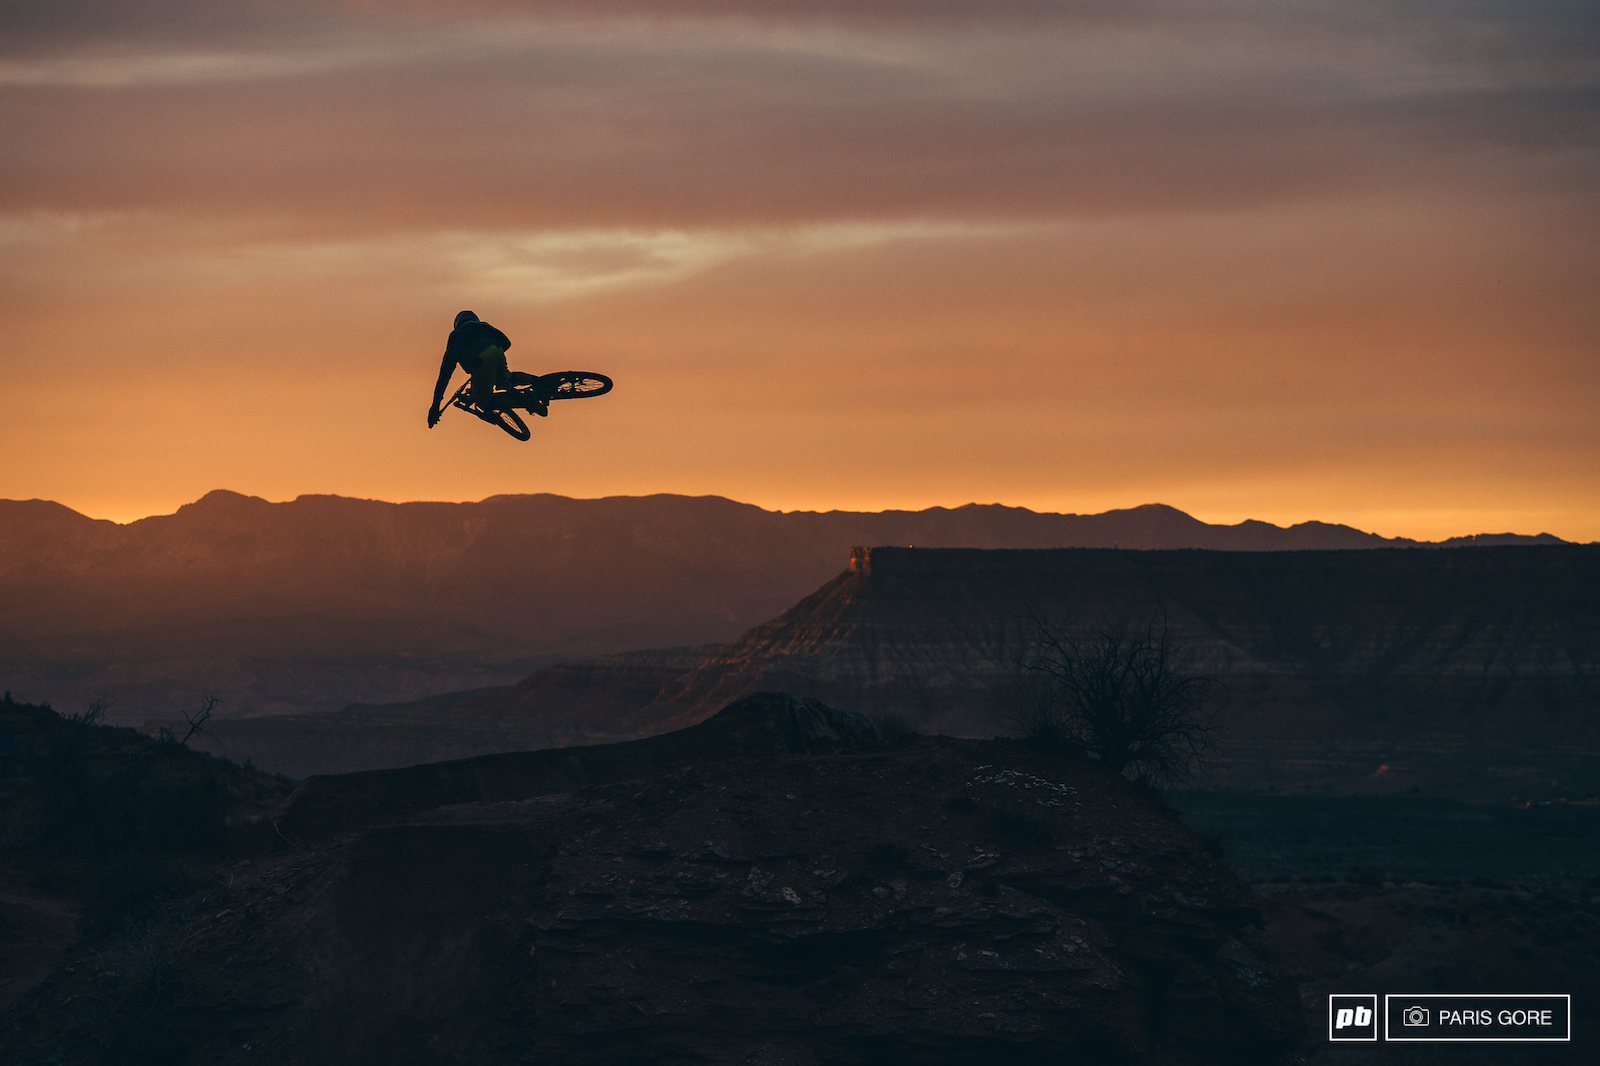 Darren Berrecloth whipping into the sunset.